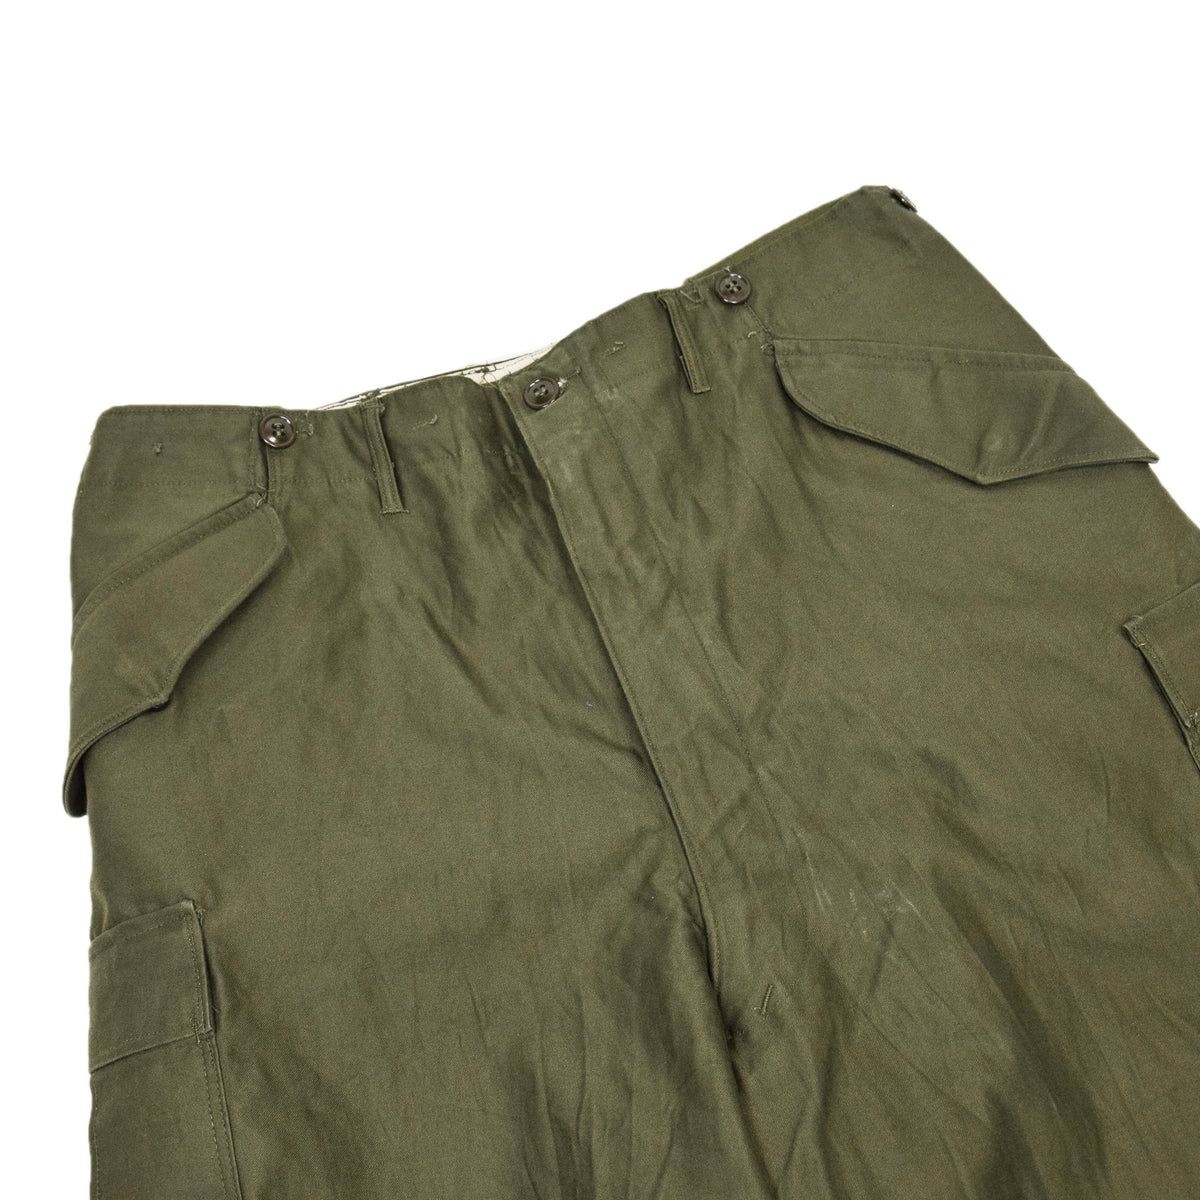 Vintage 50s US Army M-1951 Cotton Sateen OG-107 Shell Field Trousers M Reg  WAIST